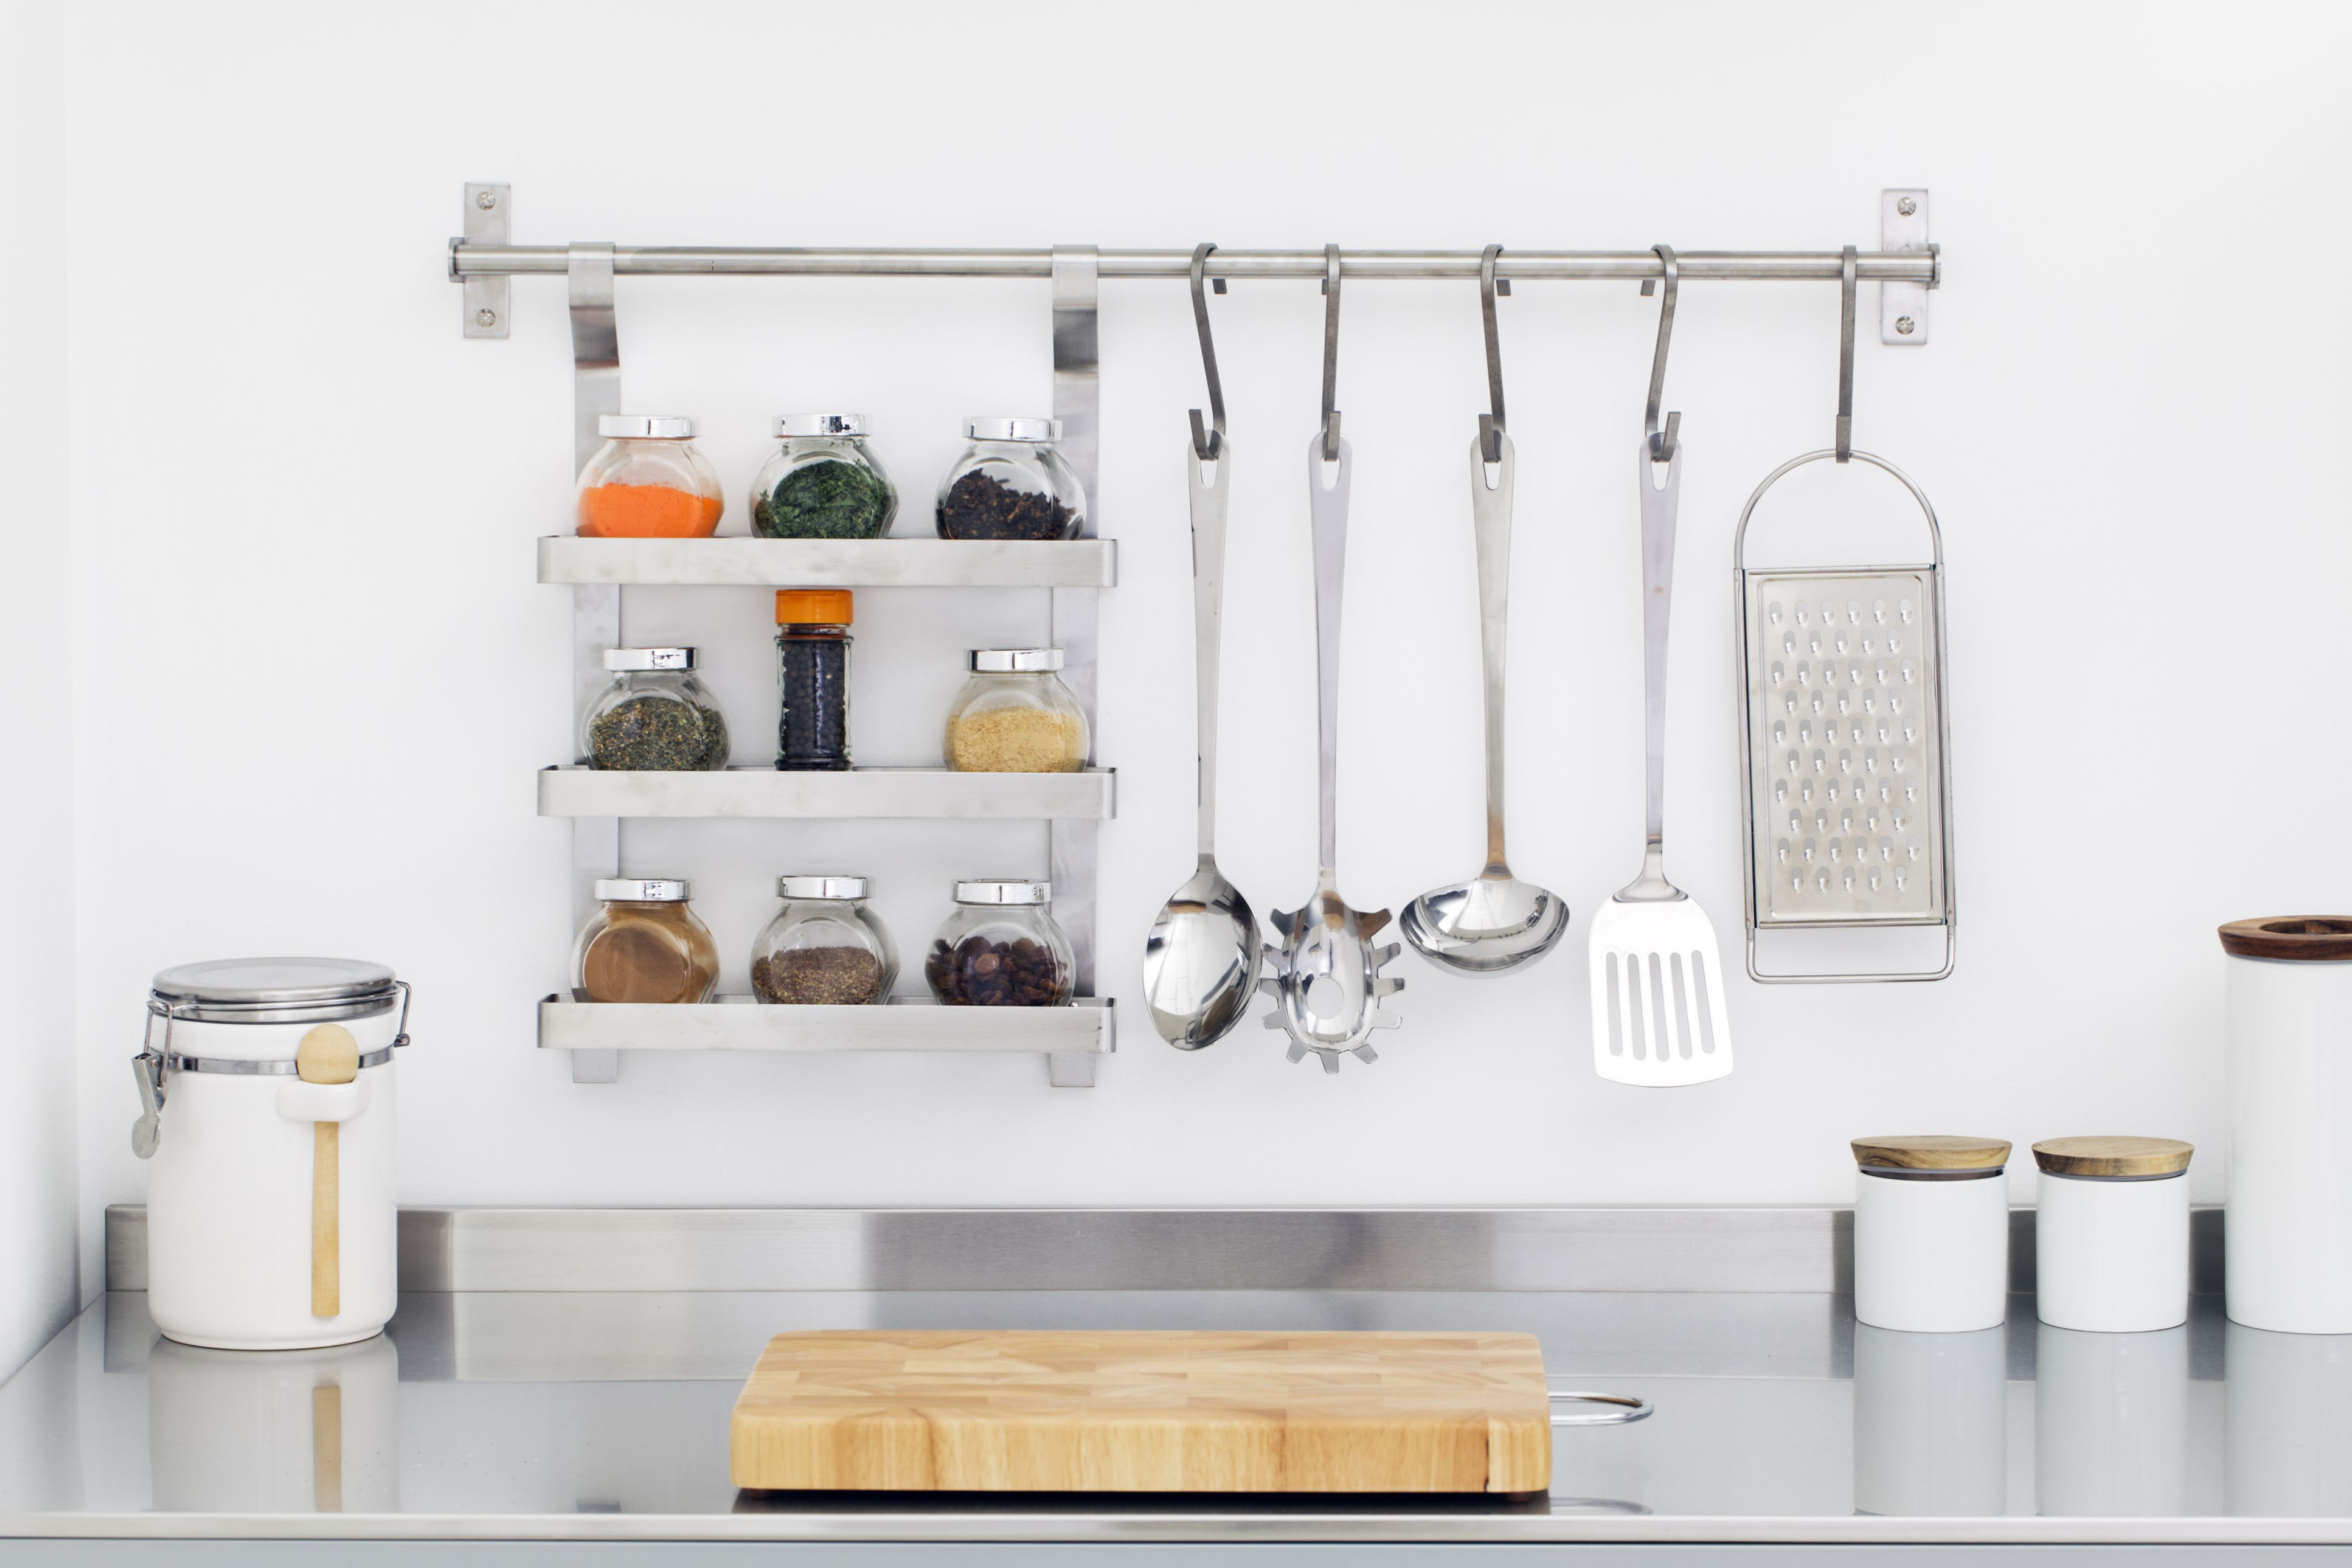 8 things you should store on your kitchen counters and 4 things you should  not